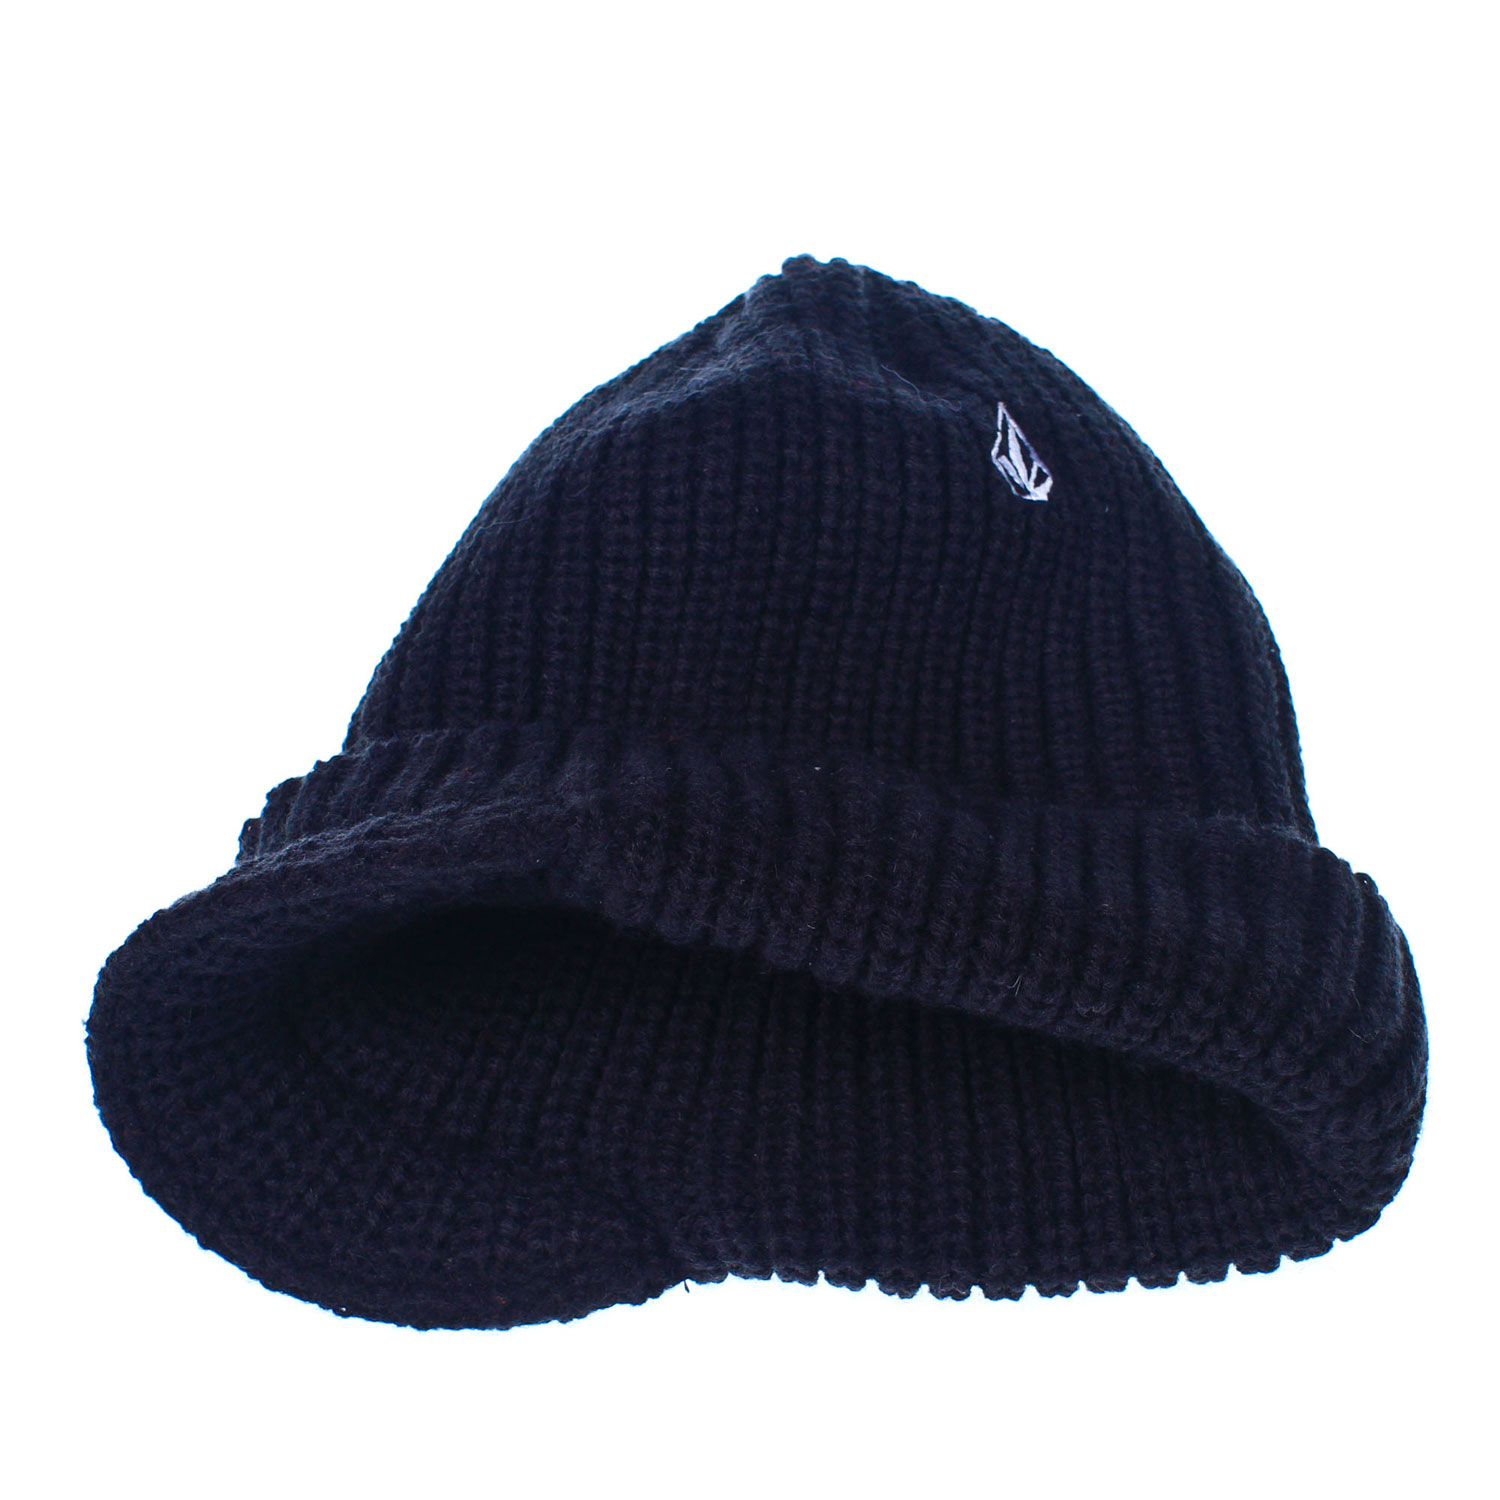 Surf Key Features of the Volcom Victorville Beanie: One Size Fits Most Machine Knit Acrylic Roll Over Stone Embroidery Volcom Embroidery Brim Fit - $26.00